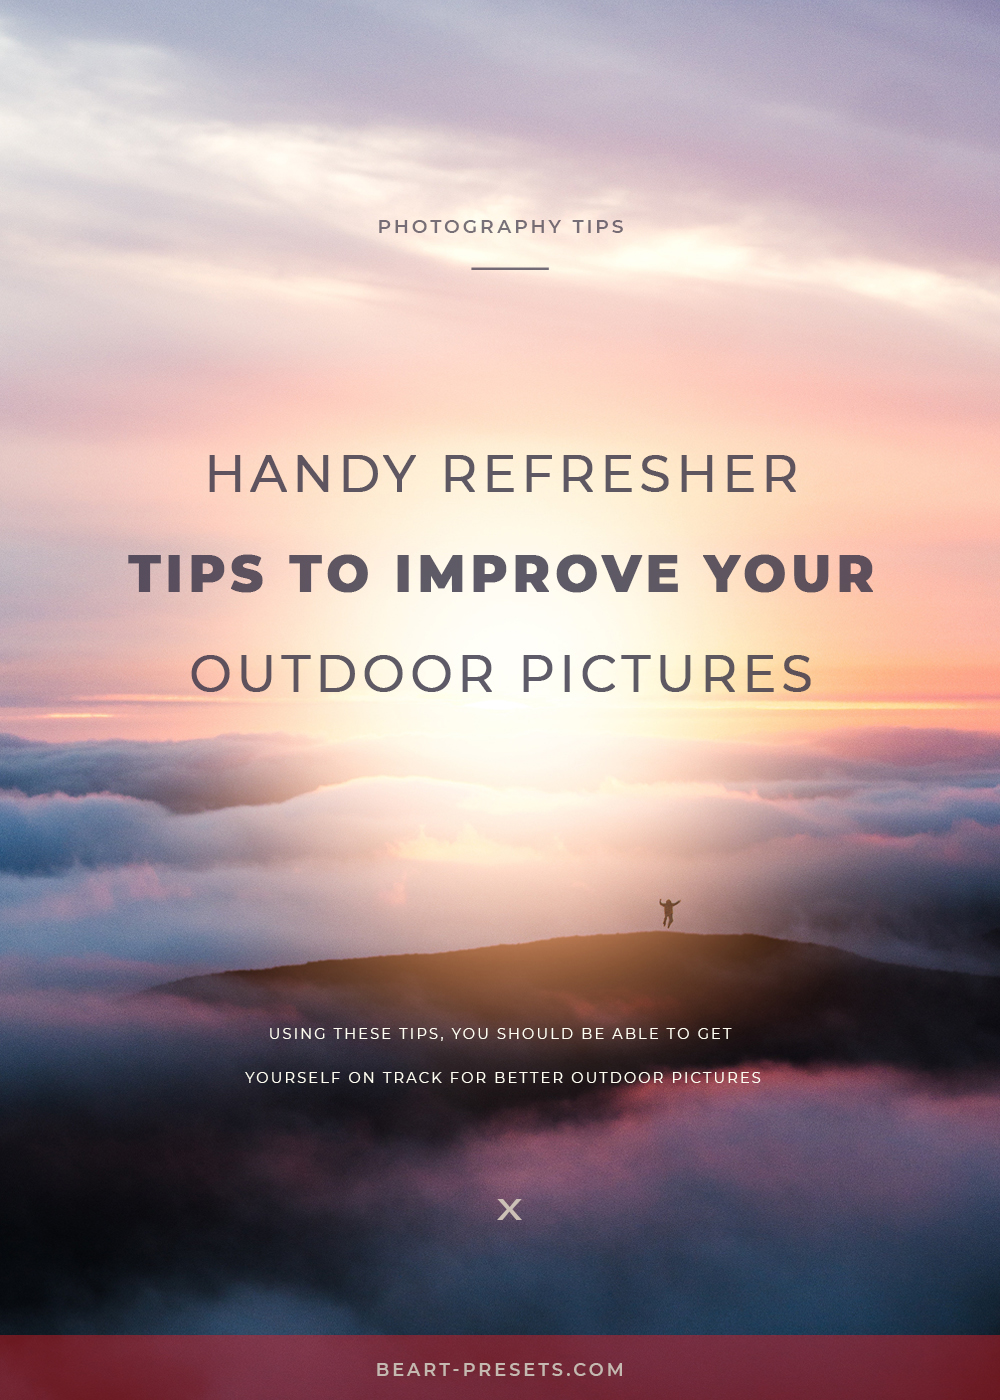 TIPS TO IMPROVE YOUR OUTDOOR PICTURES